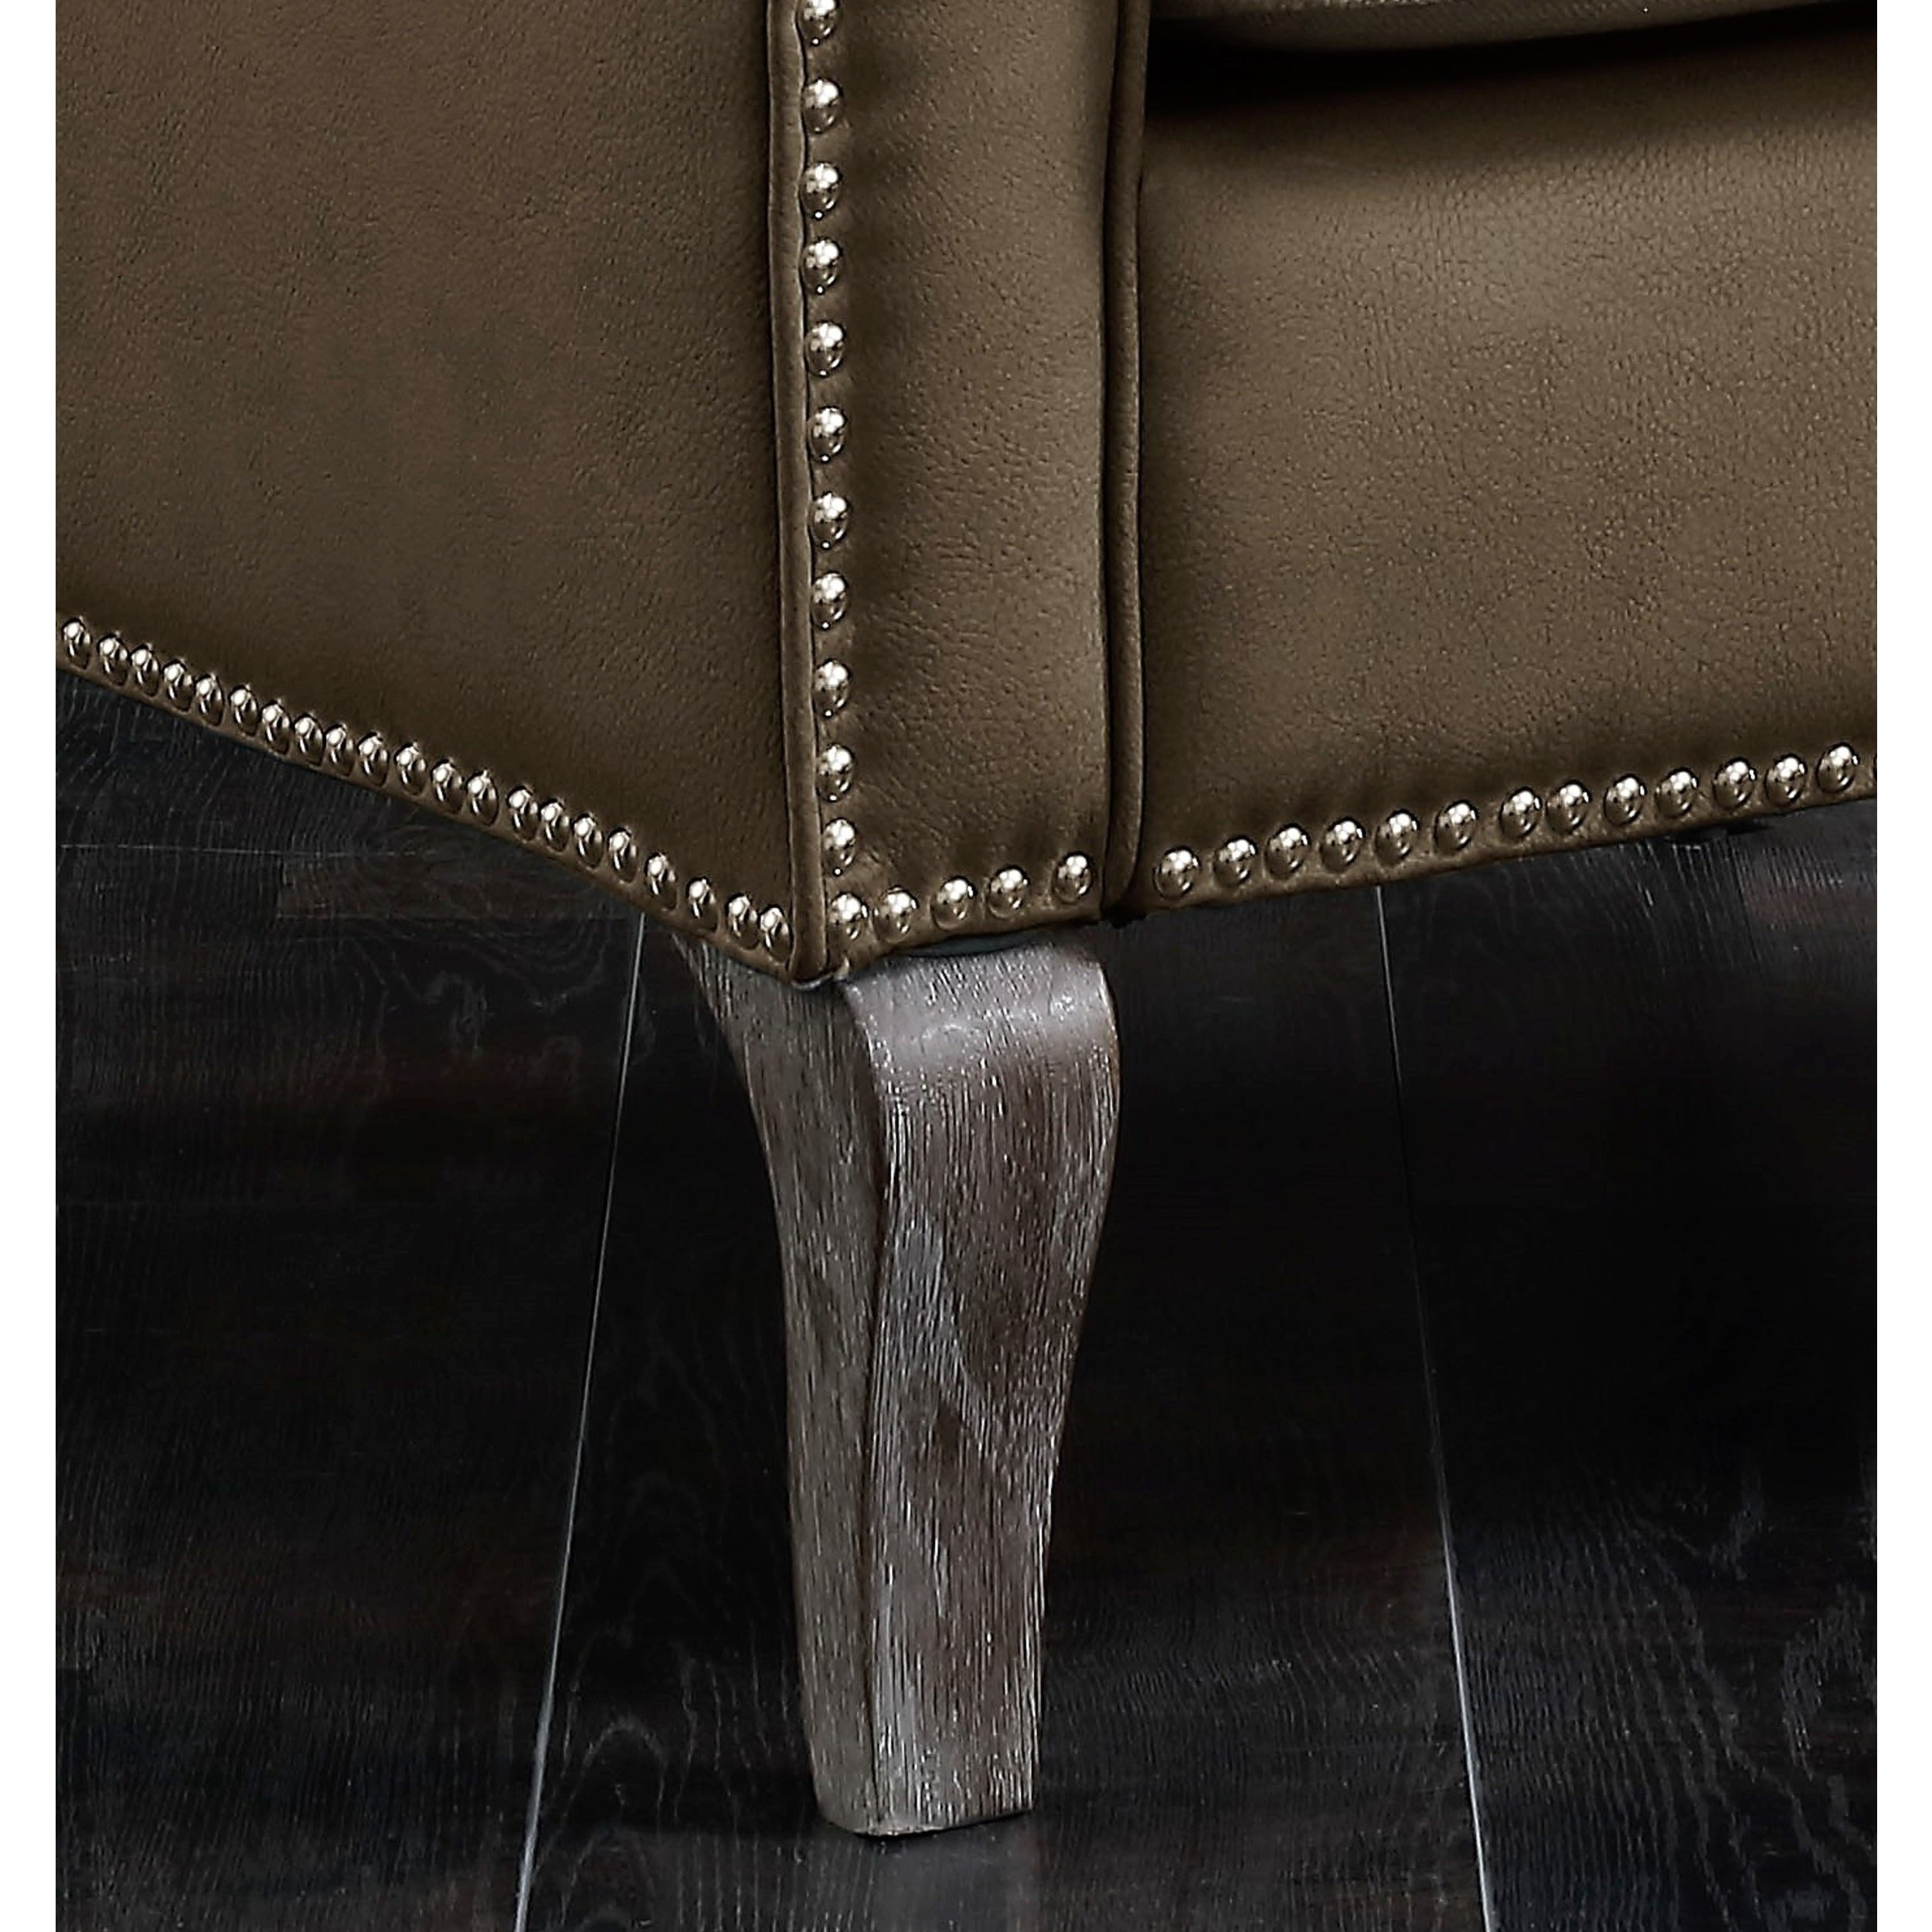 Wondrous Chic Home Kris Mixed Material Linen Leatherette Nailhead Accent Chair Short Links Chair Design For Home Short Linksinfo